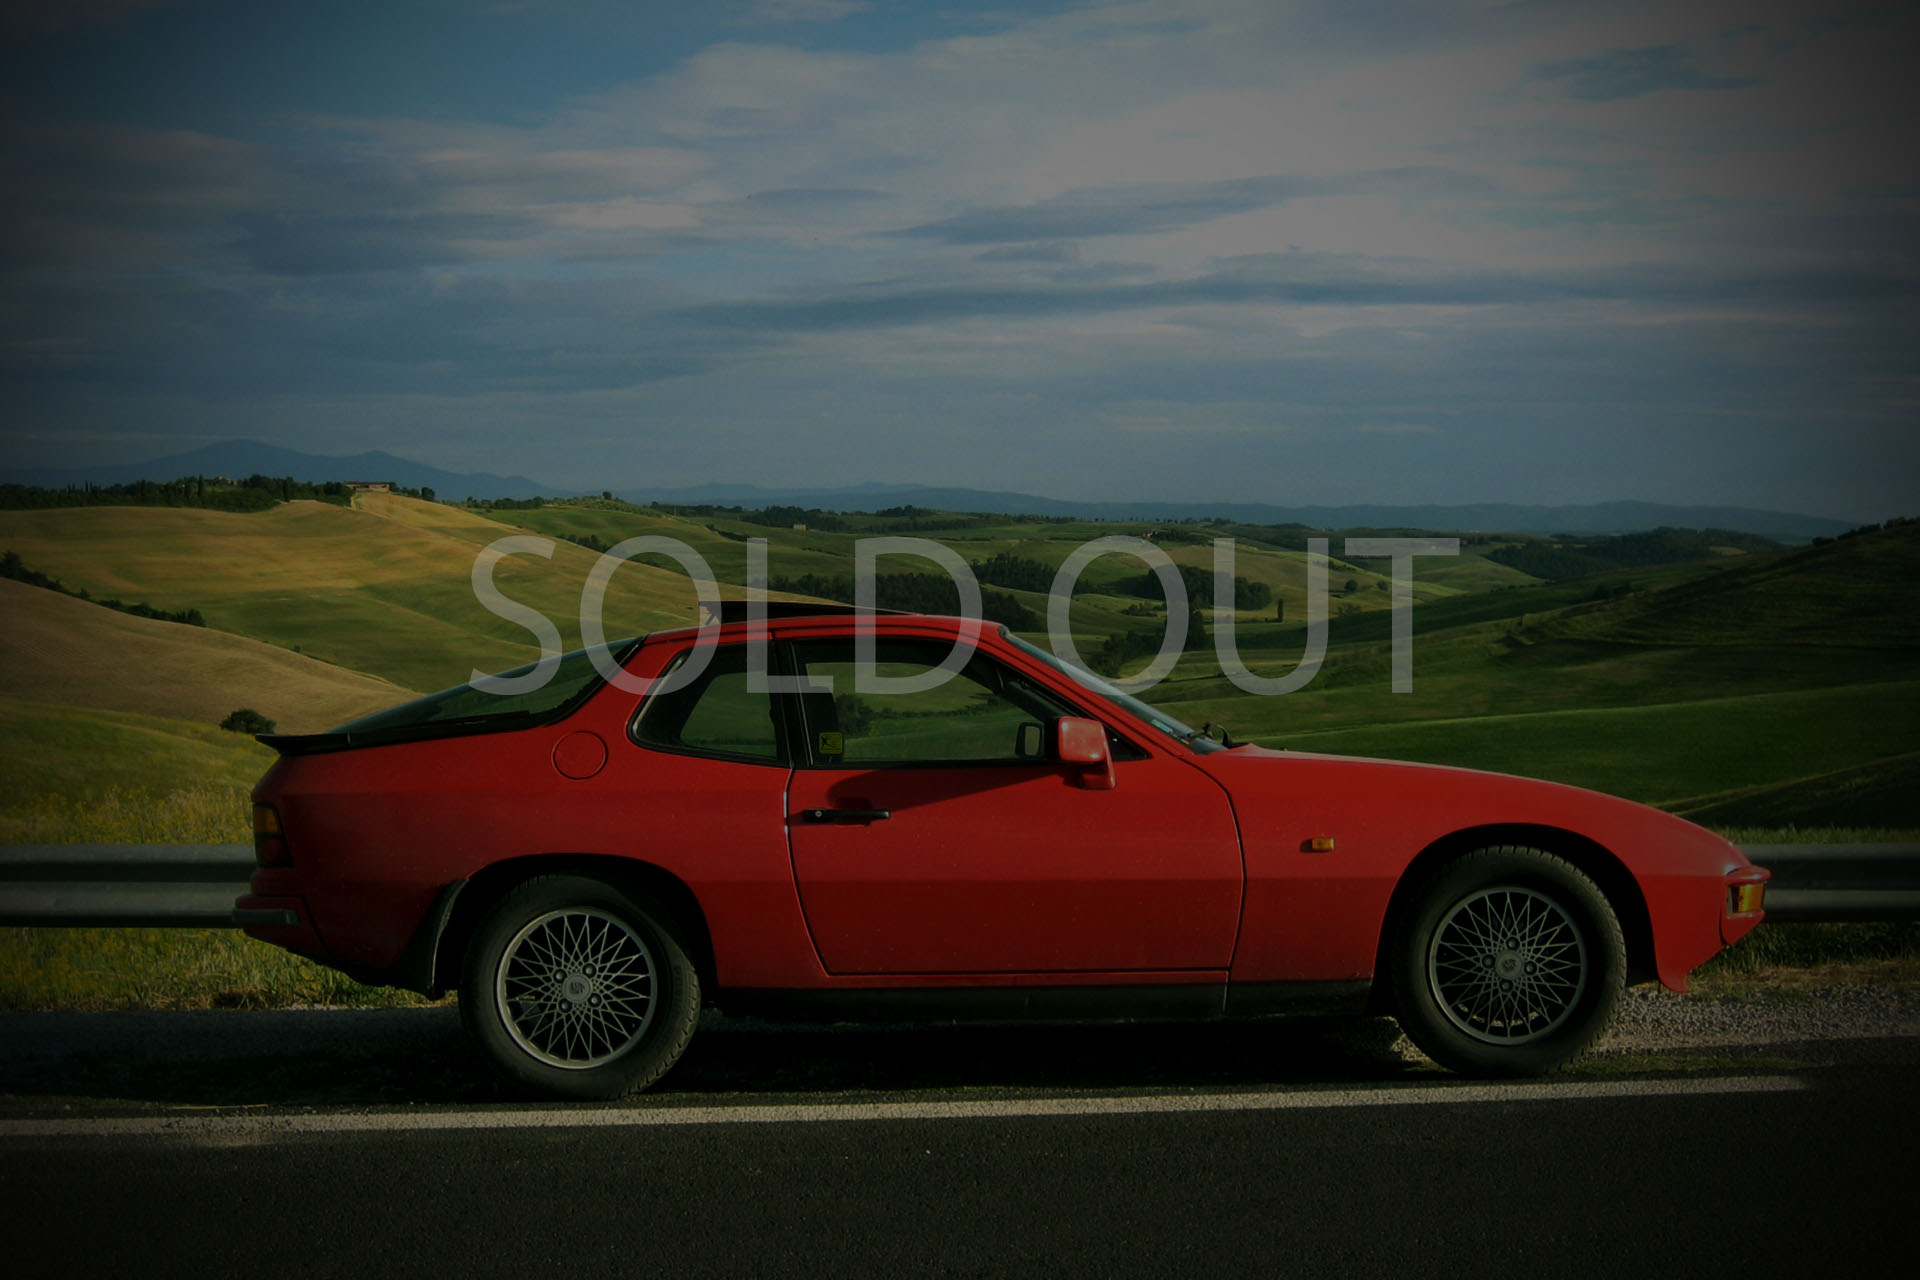 T4-I - South Tuscany Trip0_SOLD OUT Ruote Leggendarie